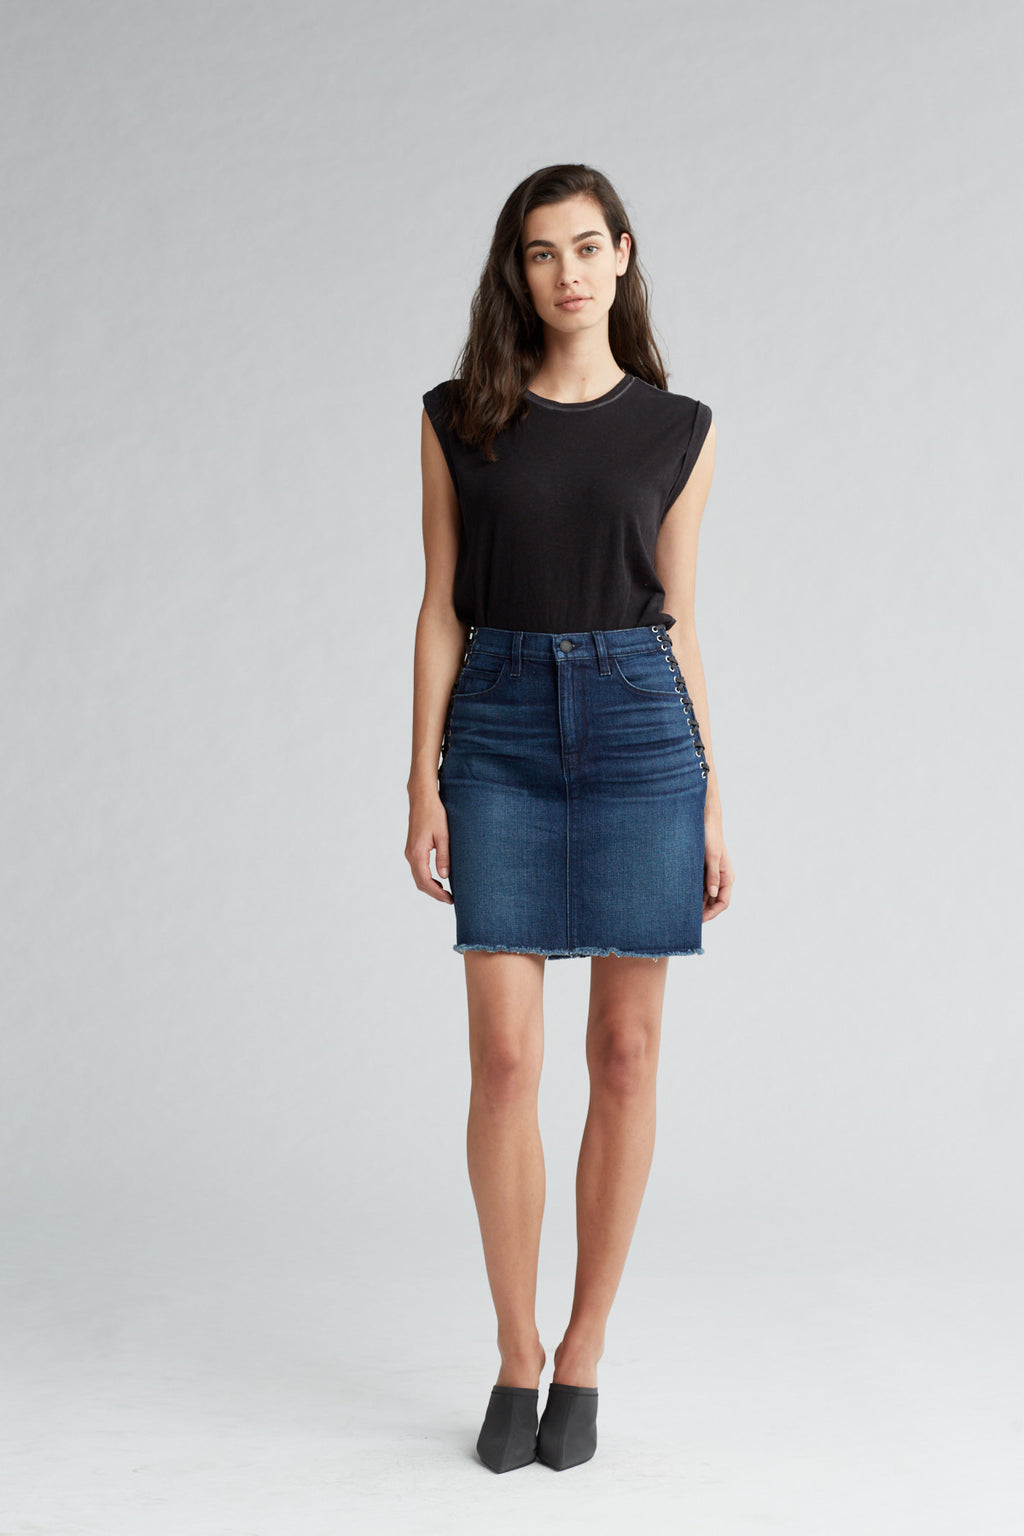 LULU DENIM PENCIL SKIRT - NIGHTFALL - Image 1